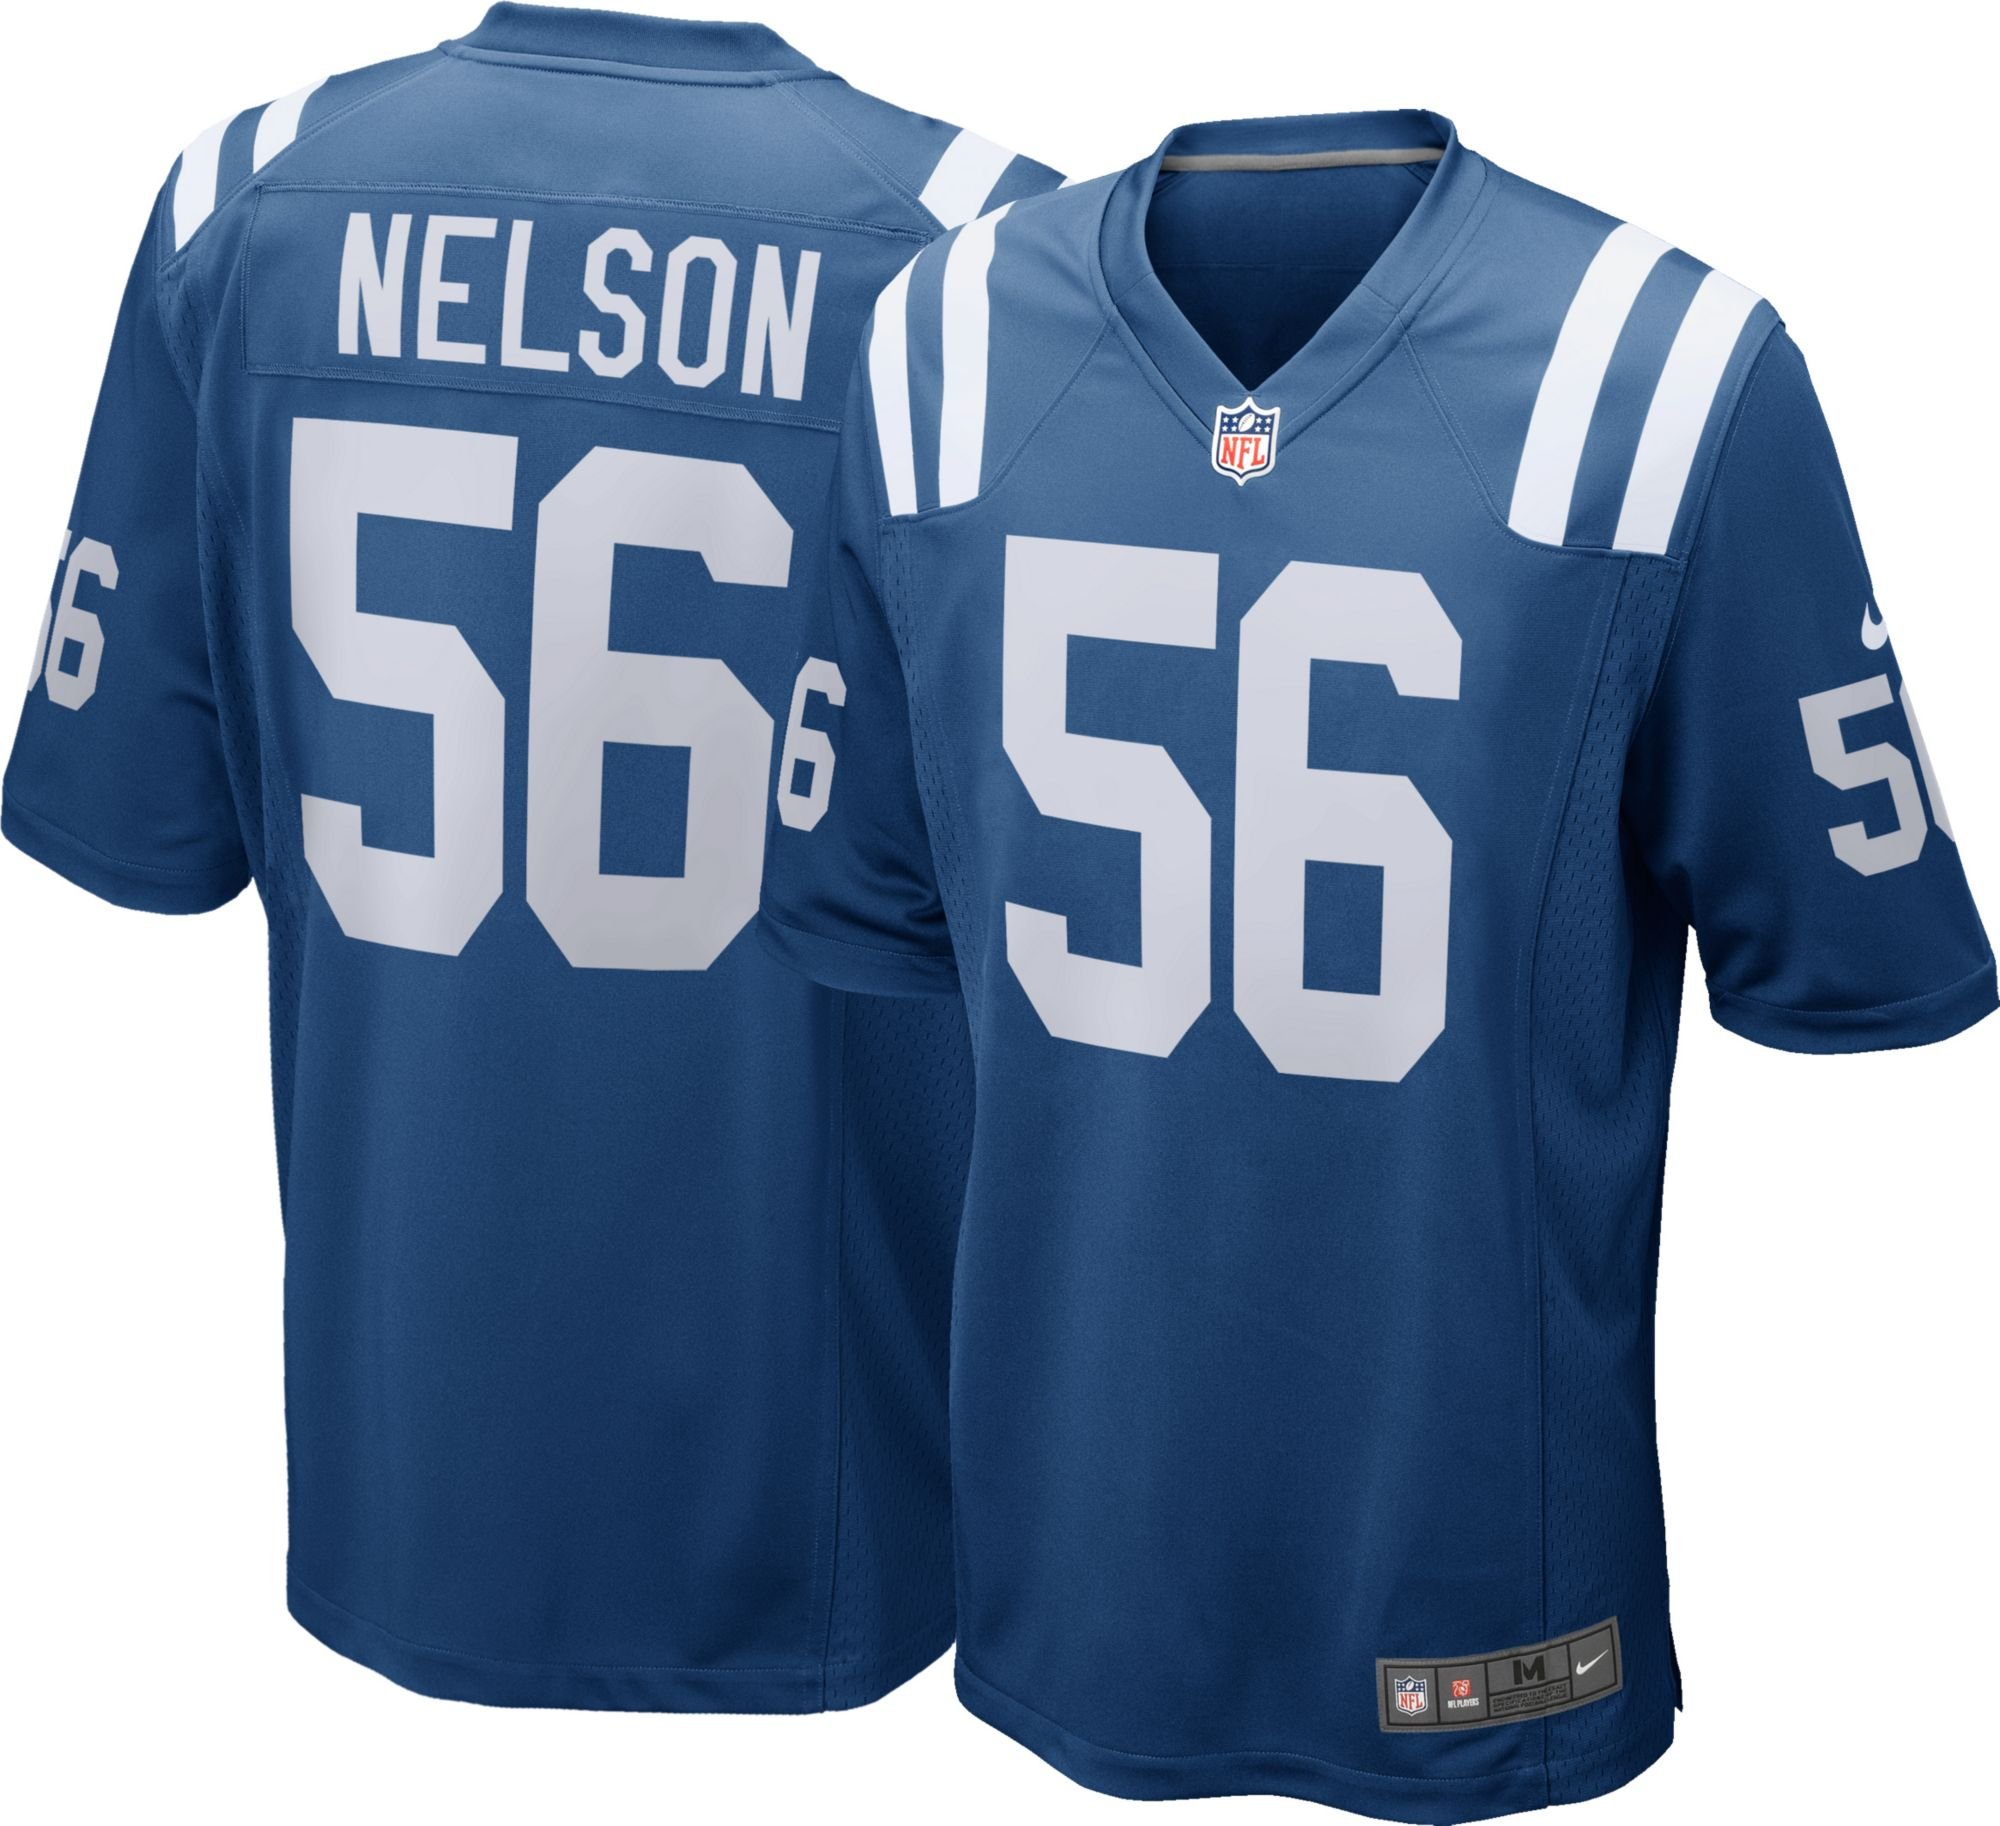 Indianapolis Colts Jerseys   NFL Fan